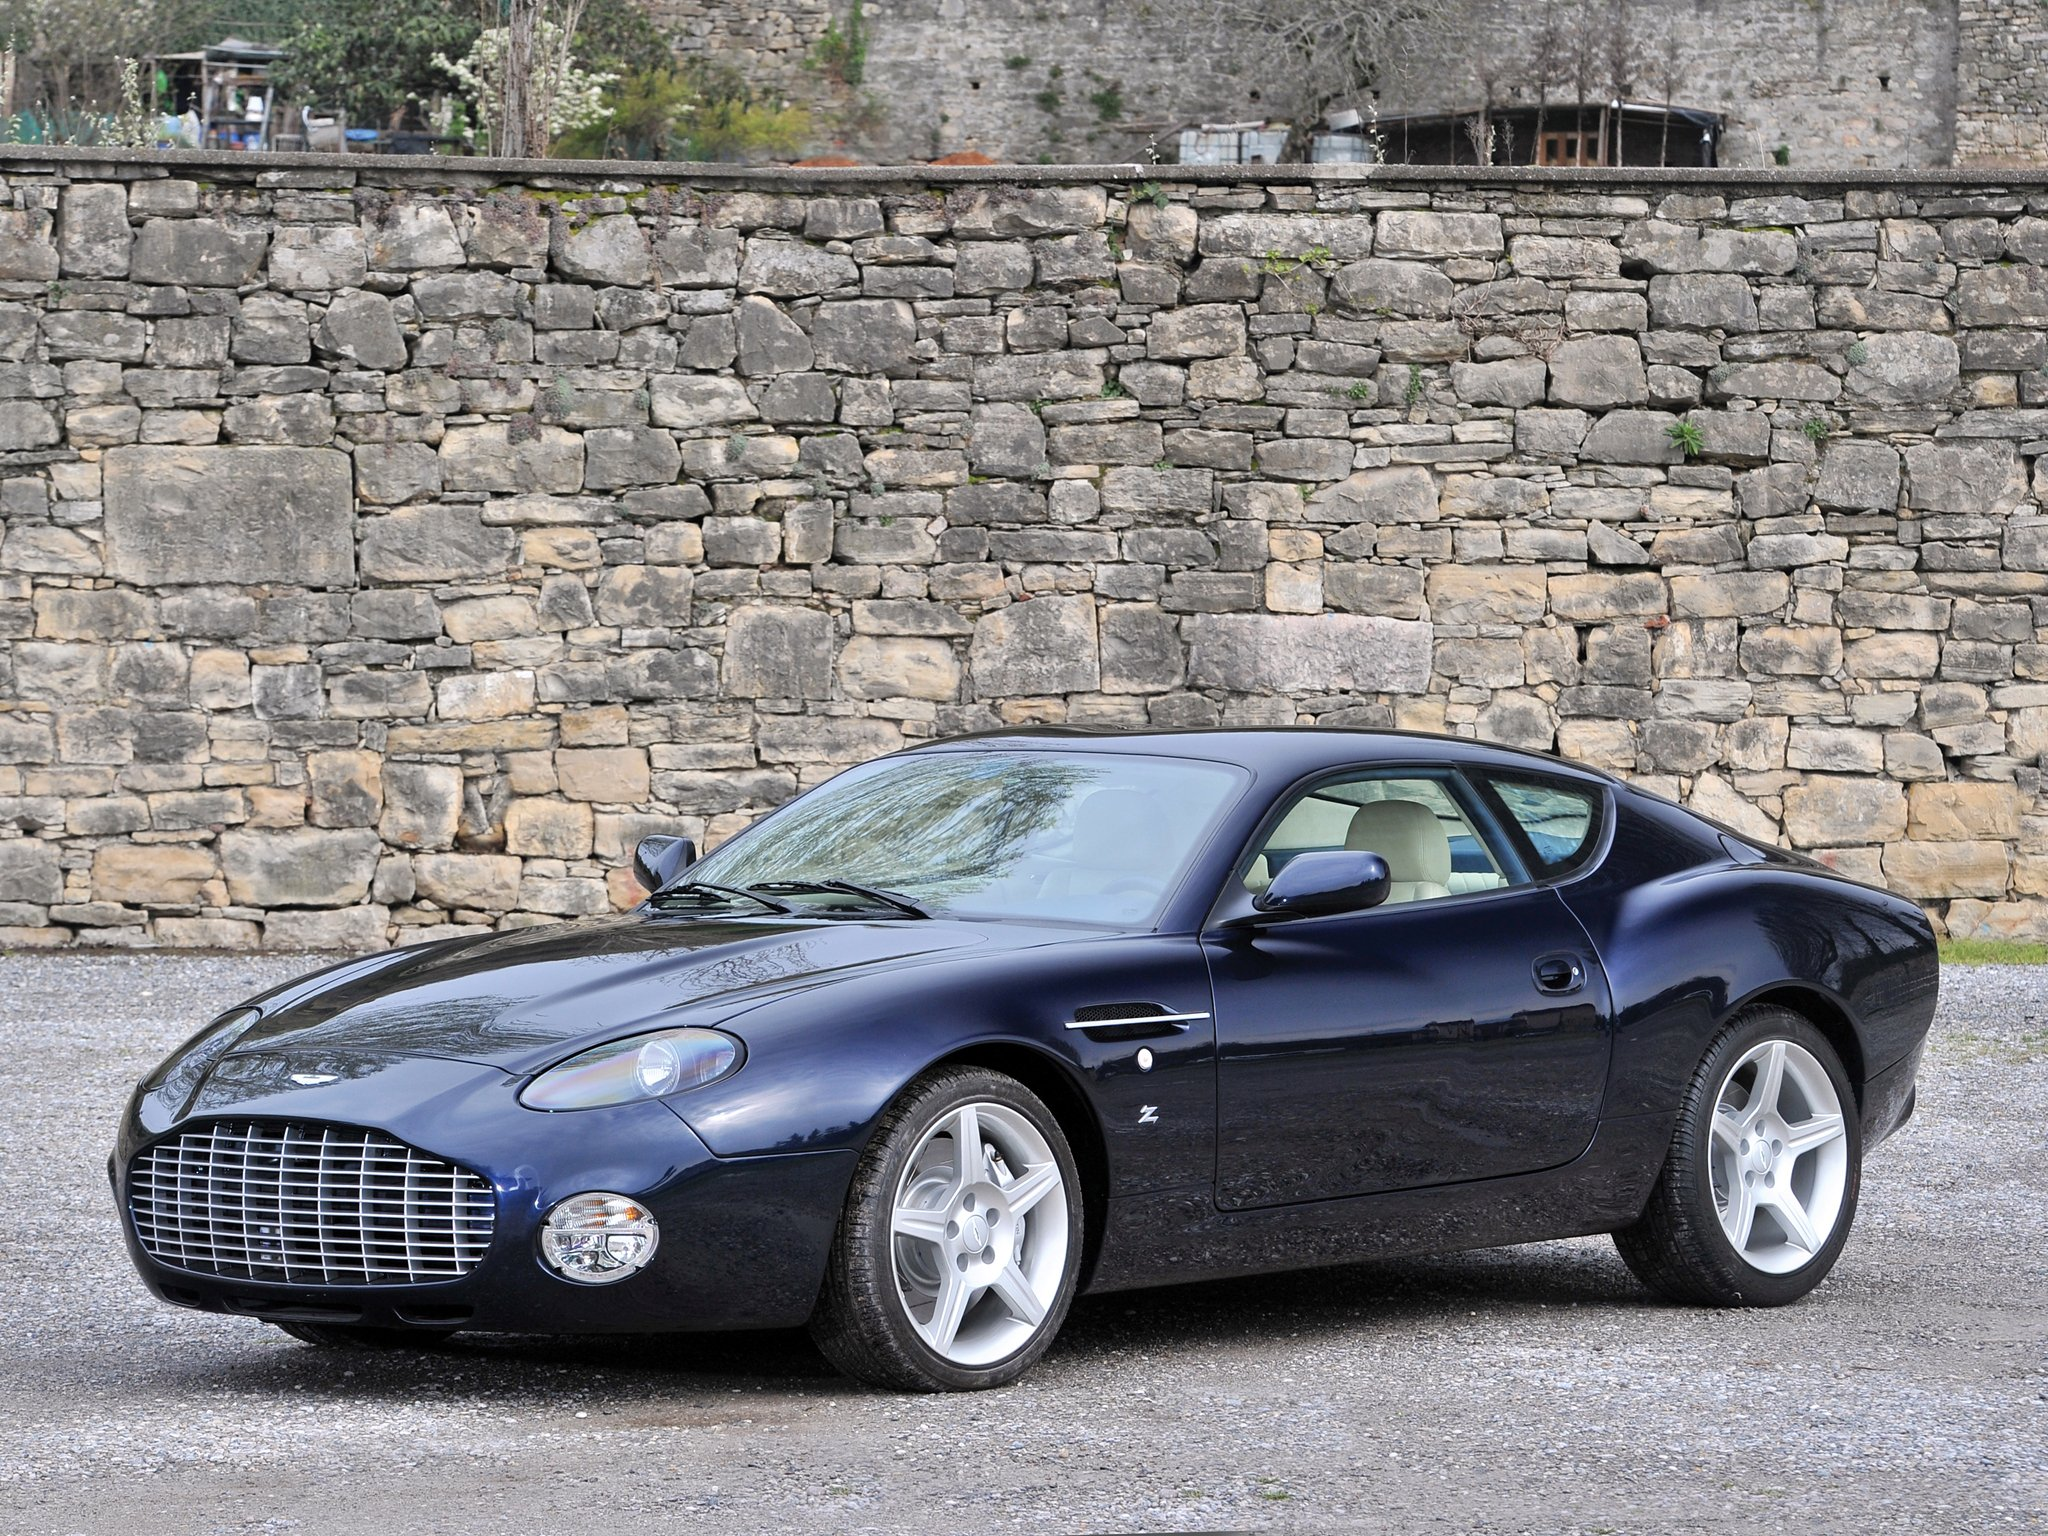 2003 aston martin db7 zagato supercar e wallpaper | 2048x1536